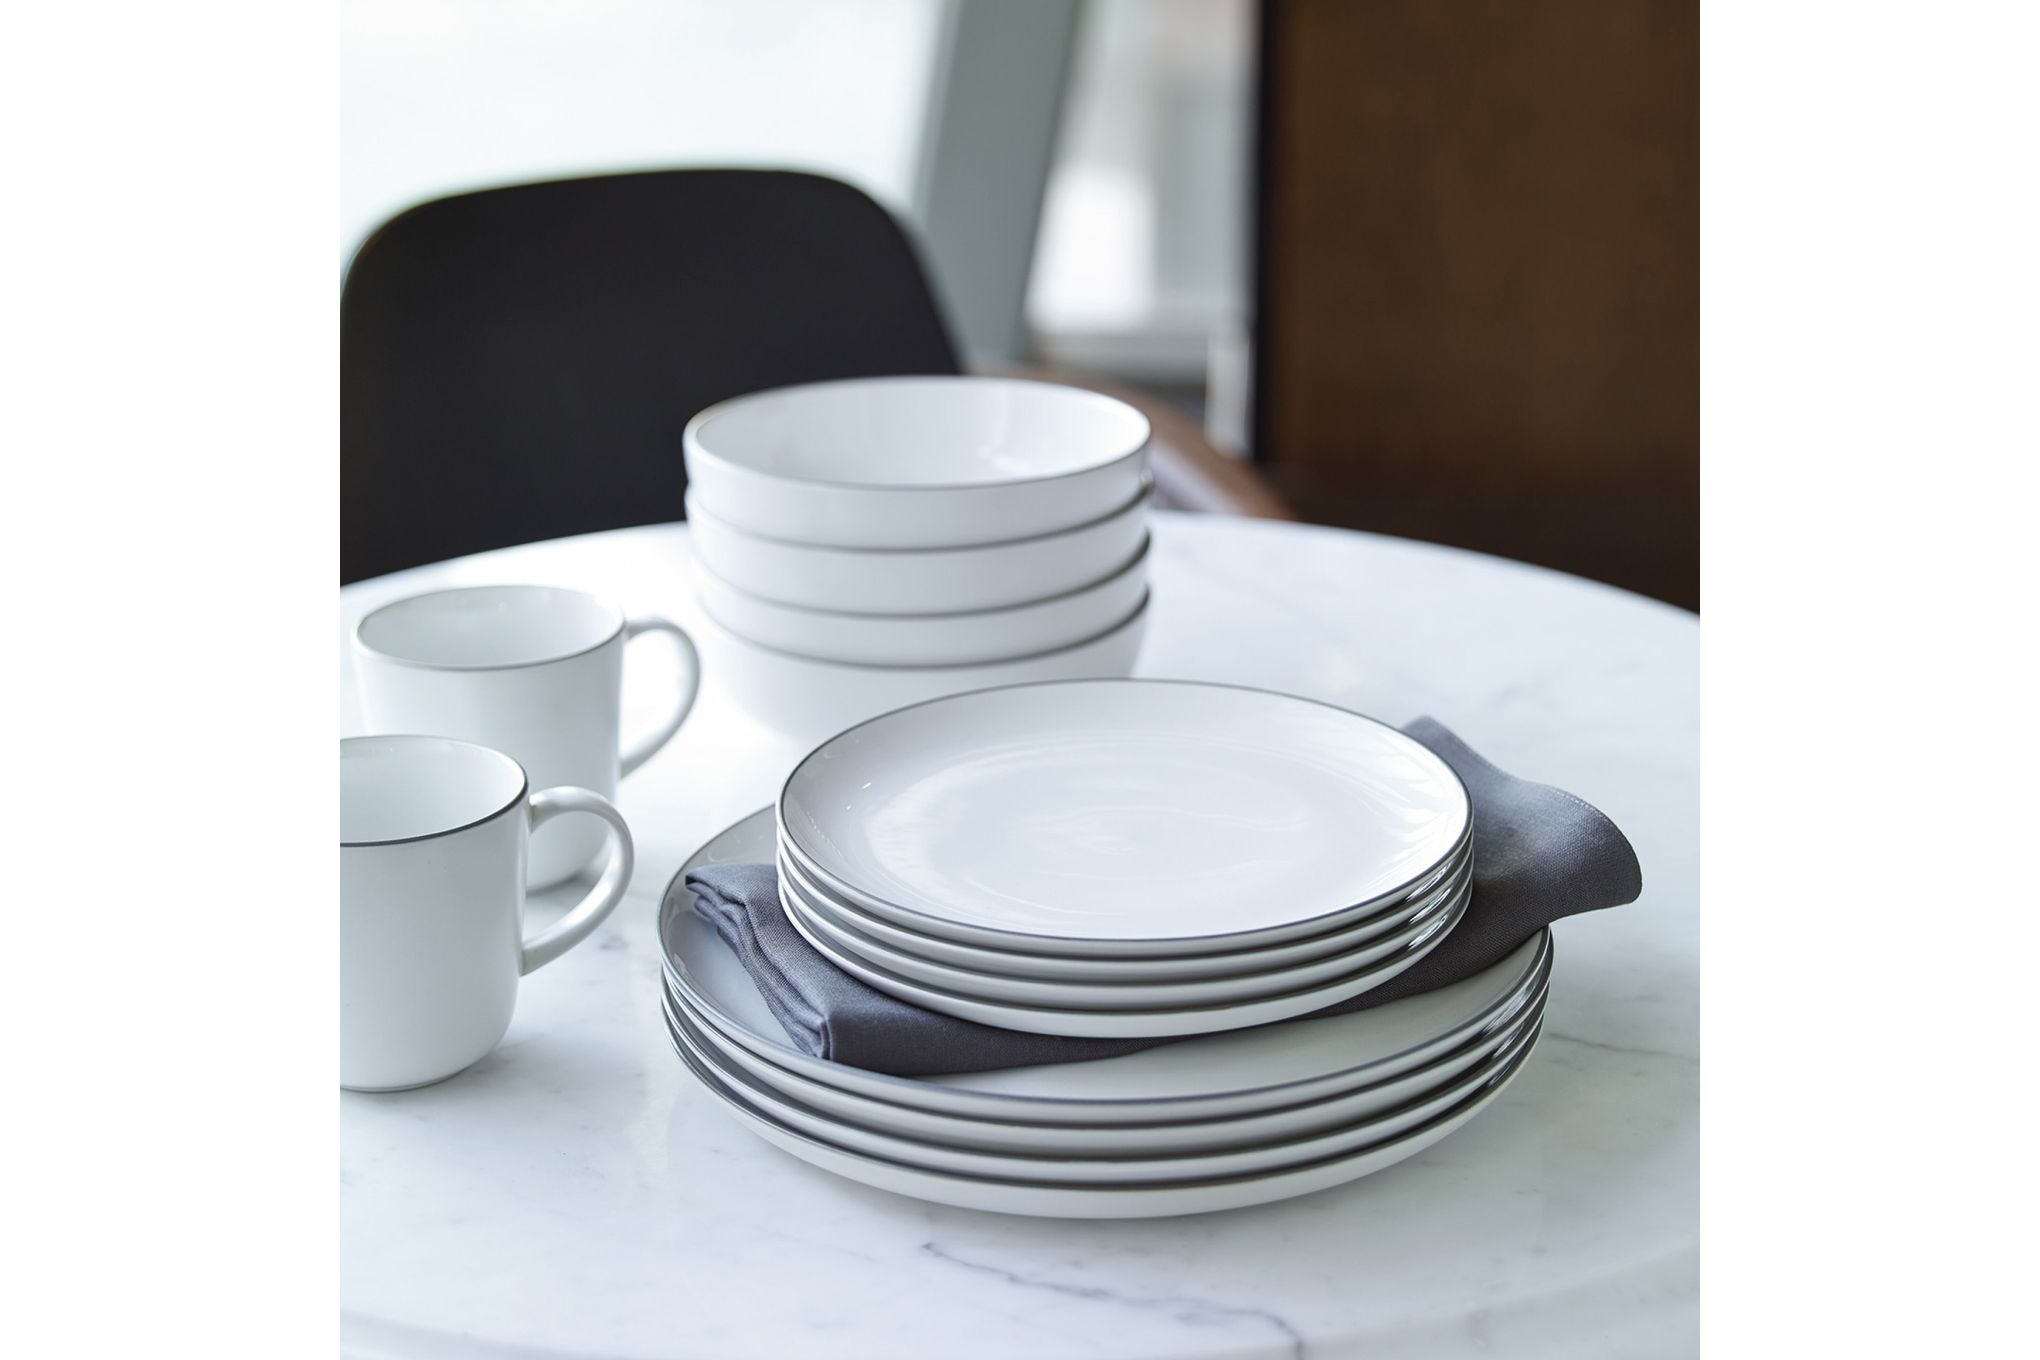 Gordon Ramsay for Royal Doulton Bread Street White 16 Piece Set 4 x Plate 28cm, Plate 22cm, Bowl 18cm, Mug thumb 2